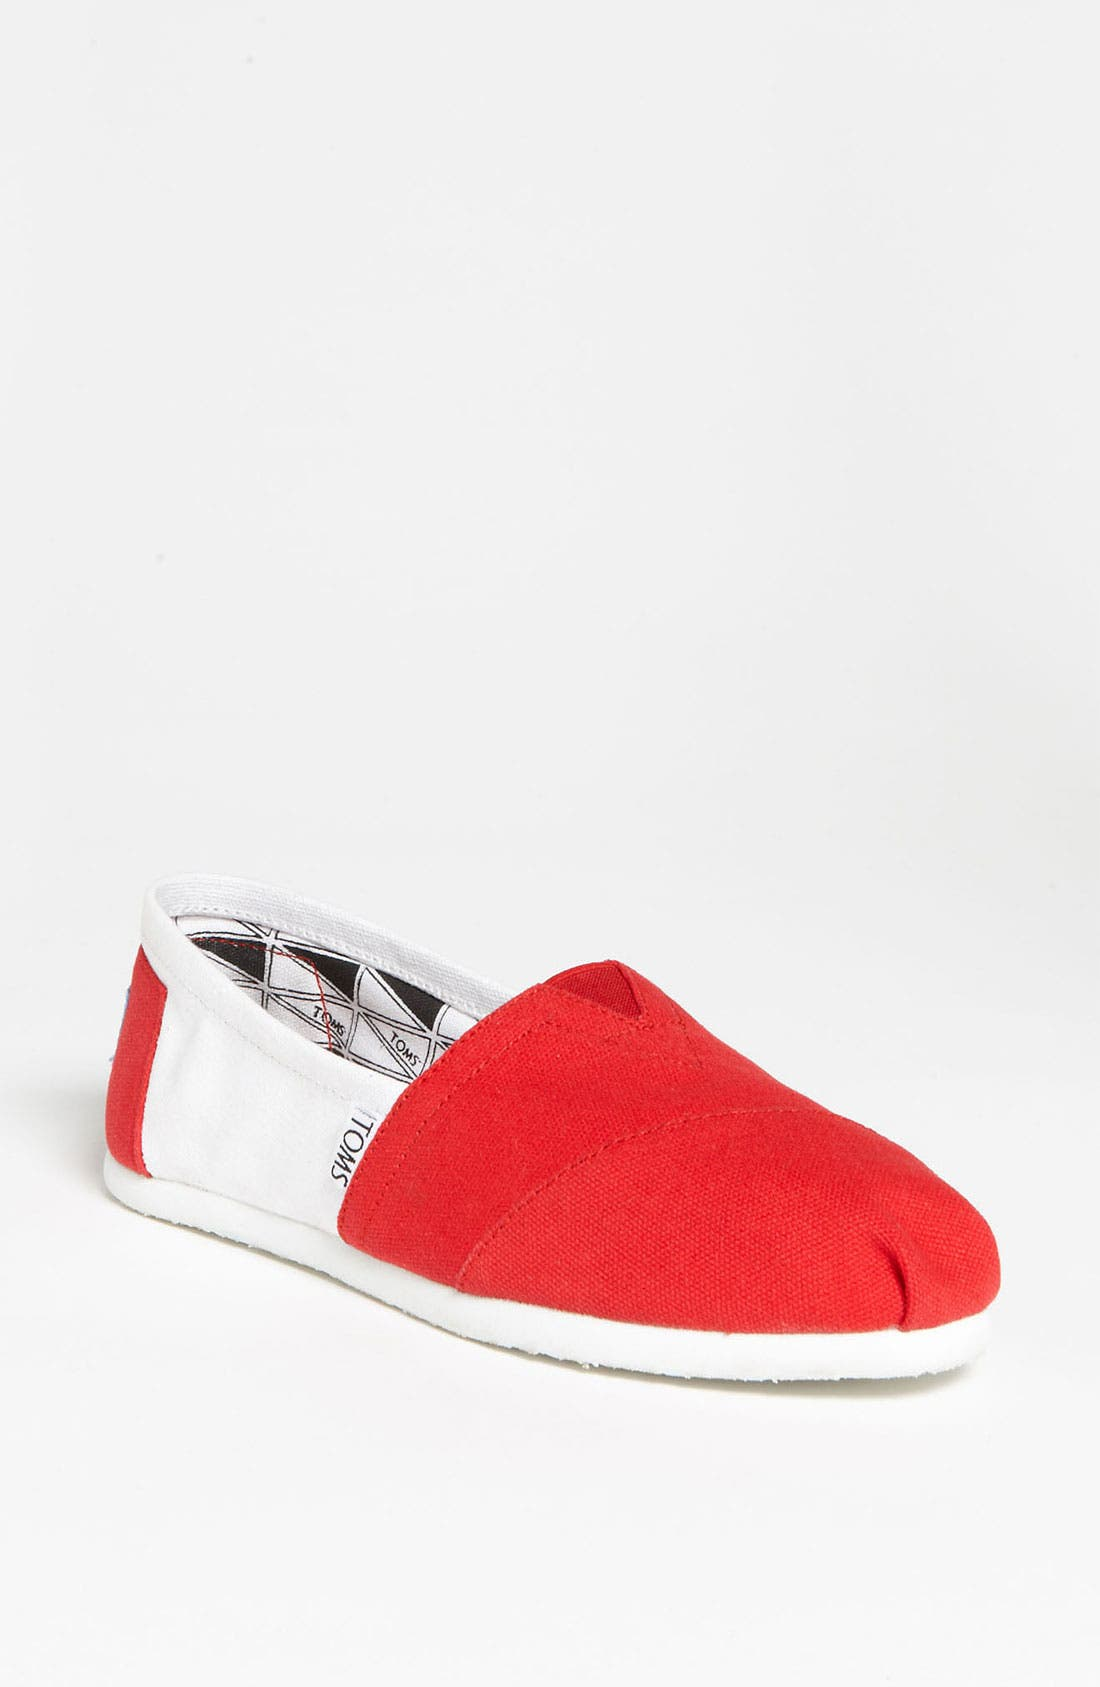 Main Image - TOMS 'Campus Classics - University of Wisconsin' Slip-On (Women)